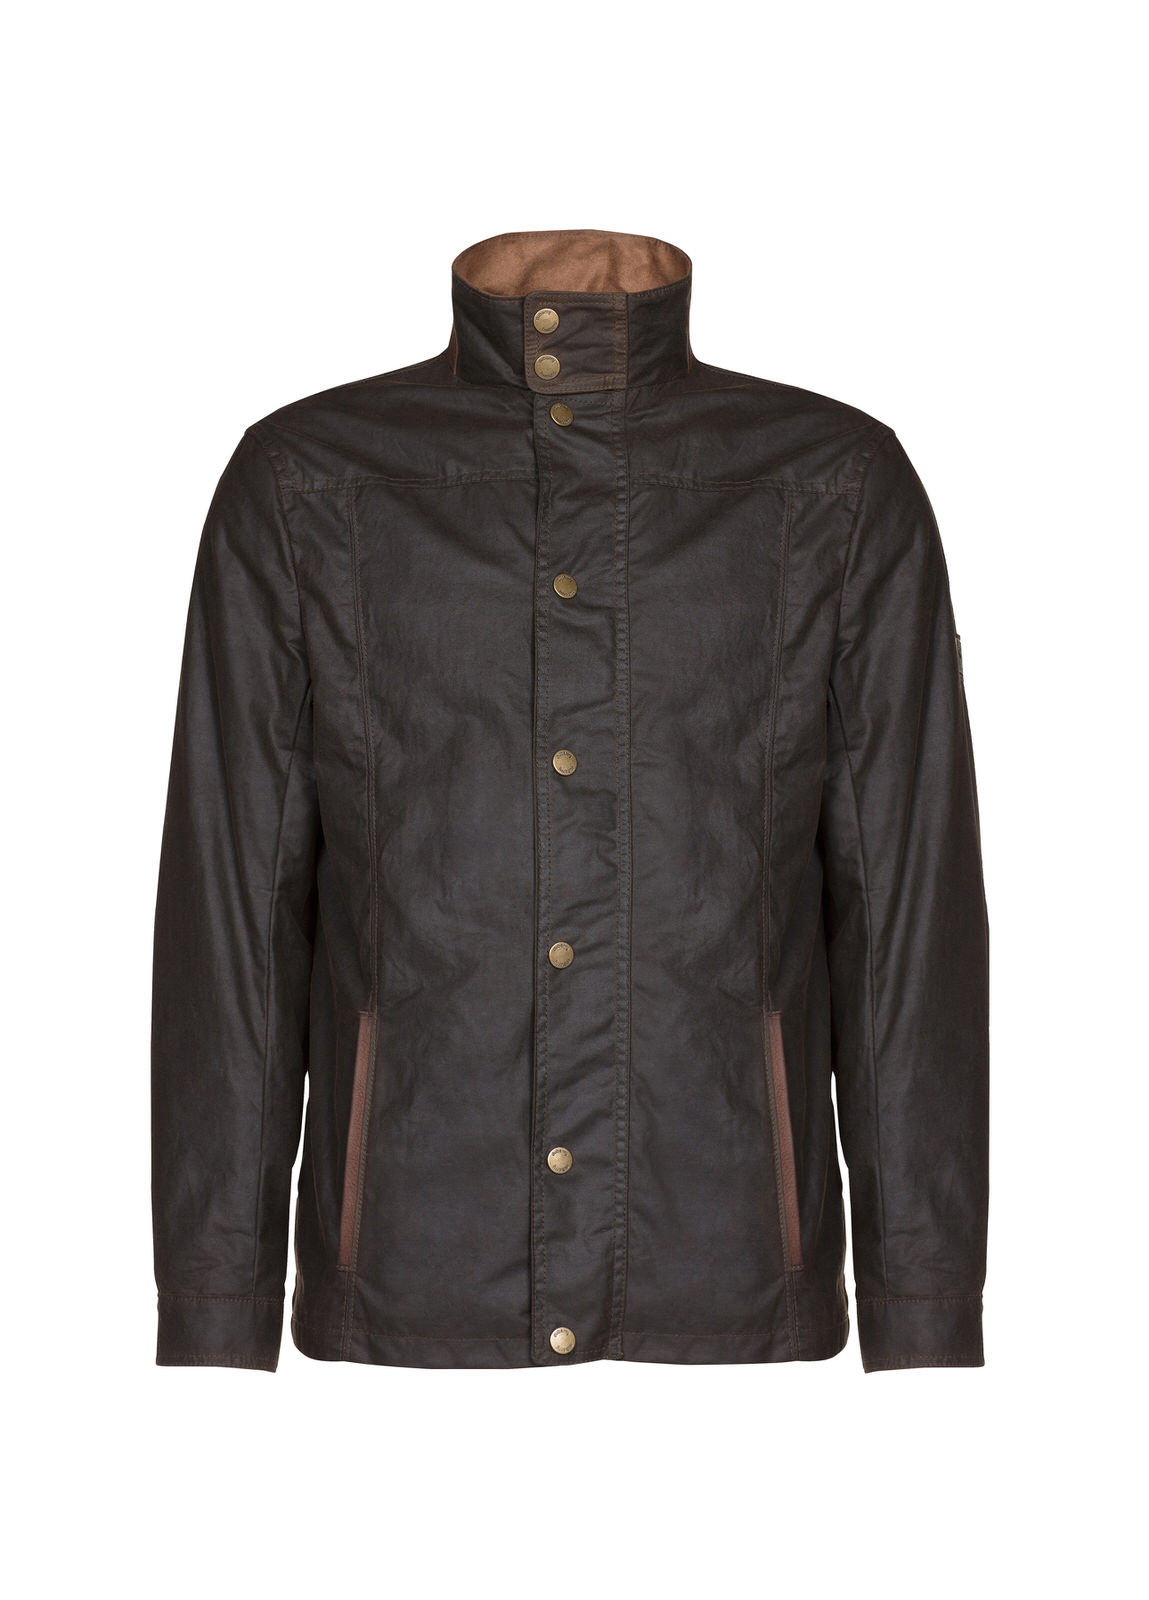 Carrickfergus_Waxed_Jacket_Olive_Image_1